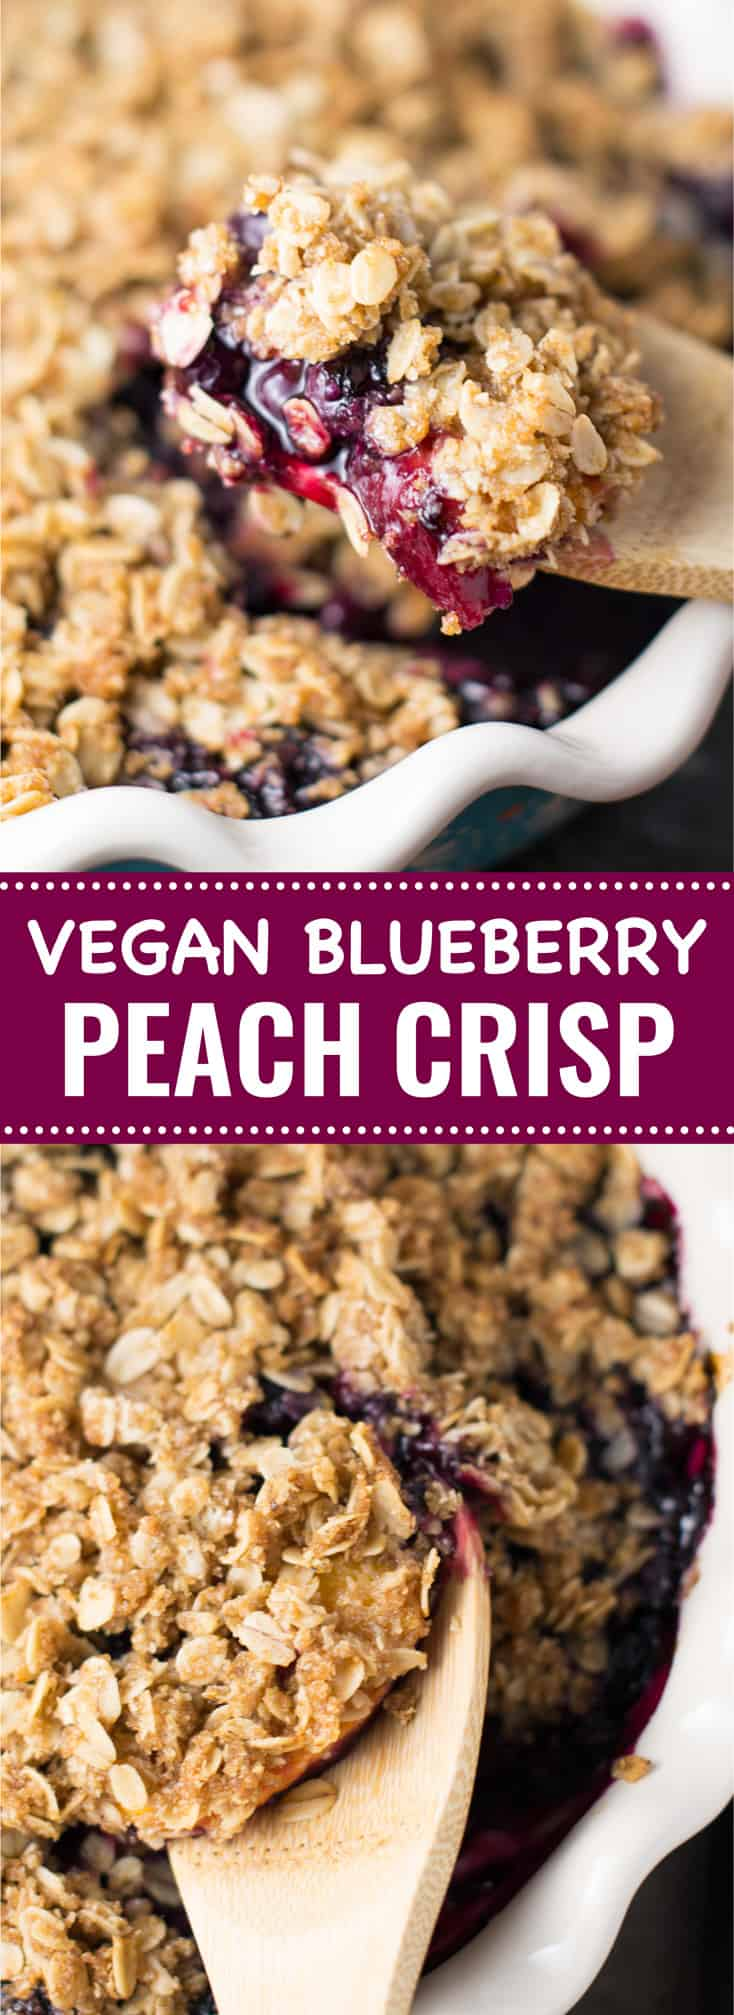 vegan blueberry peach crisp recipe - gluten free